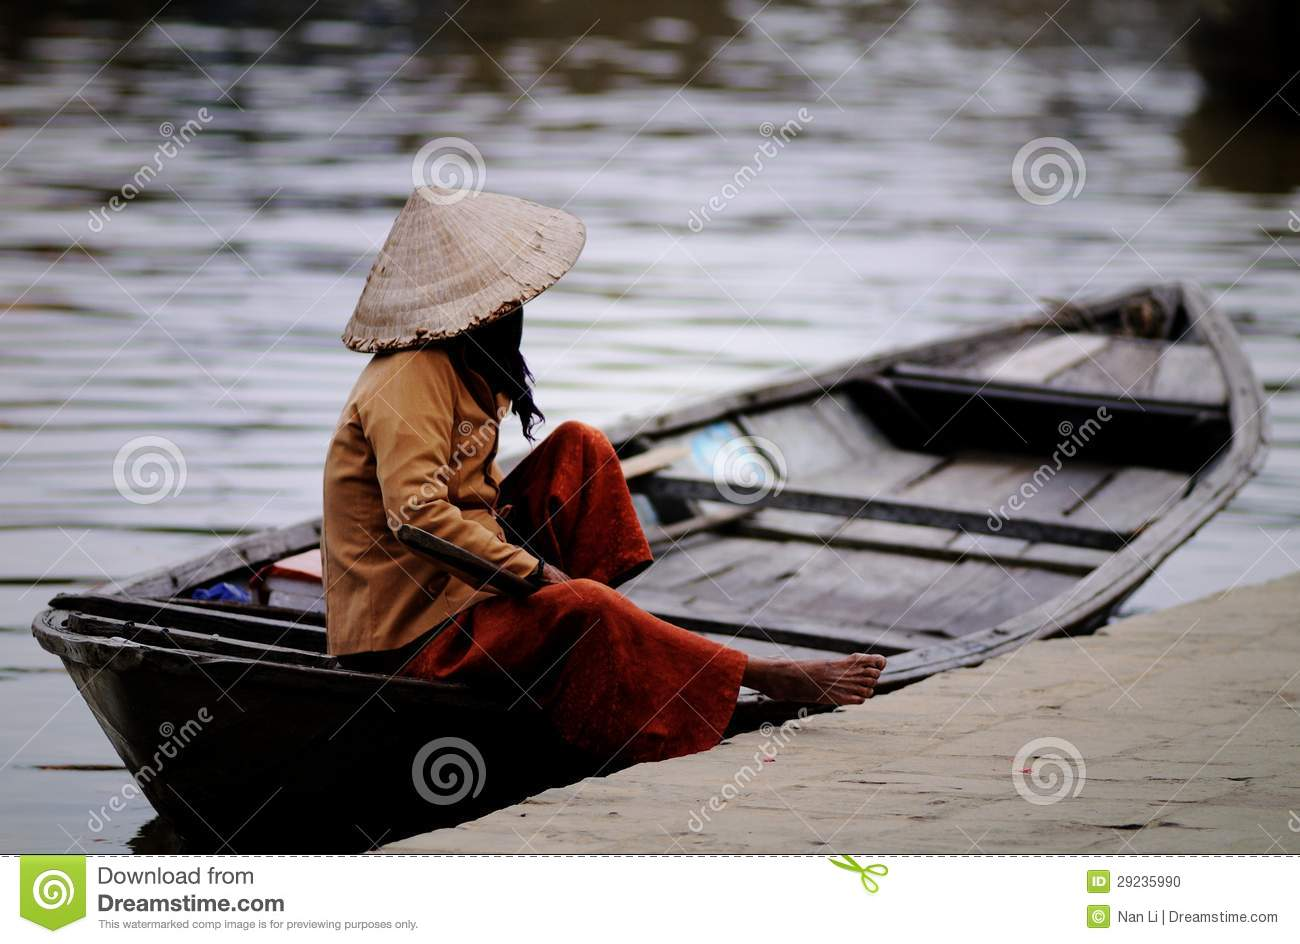 Boatman with Conical hats in Vietnam